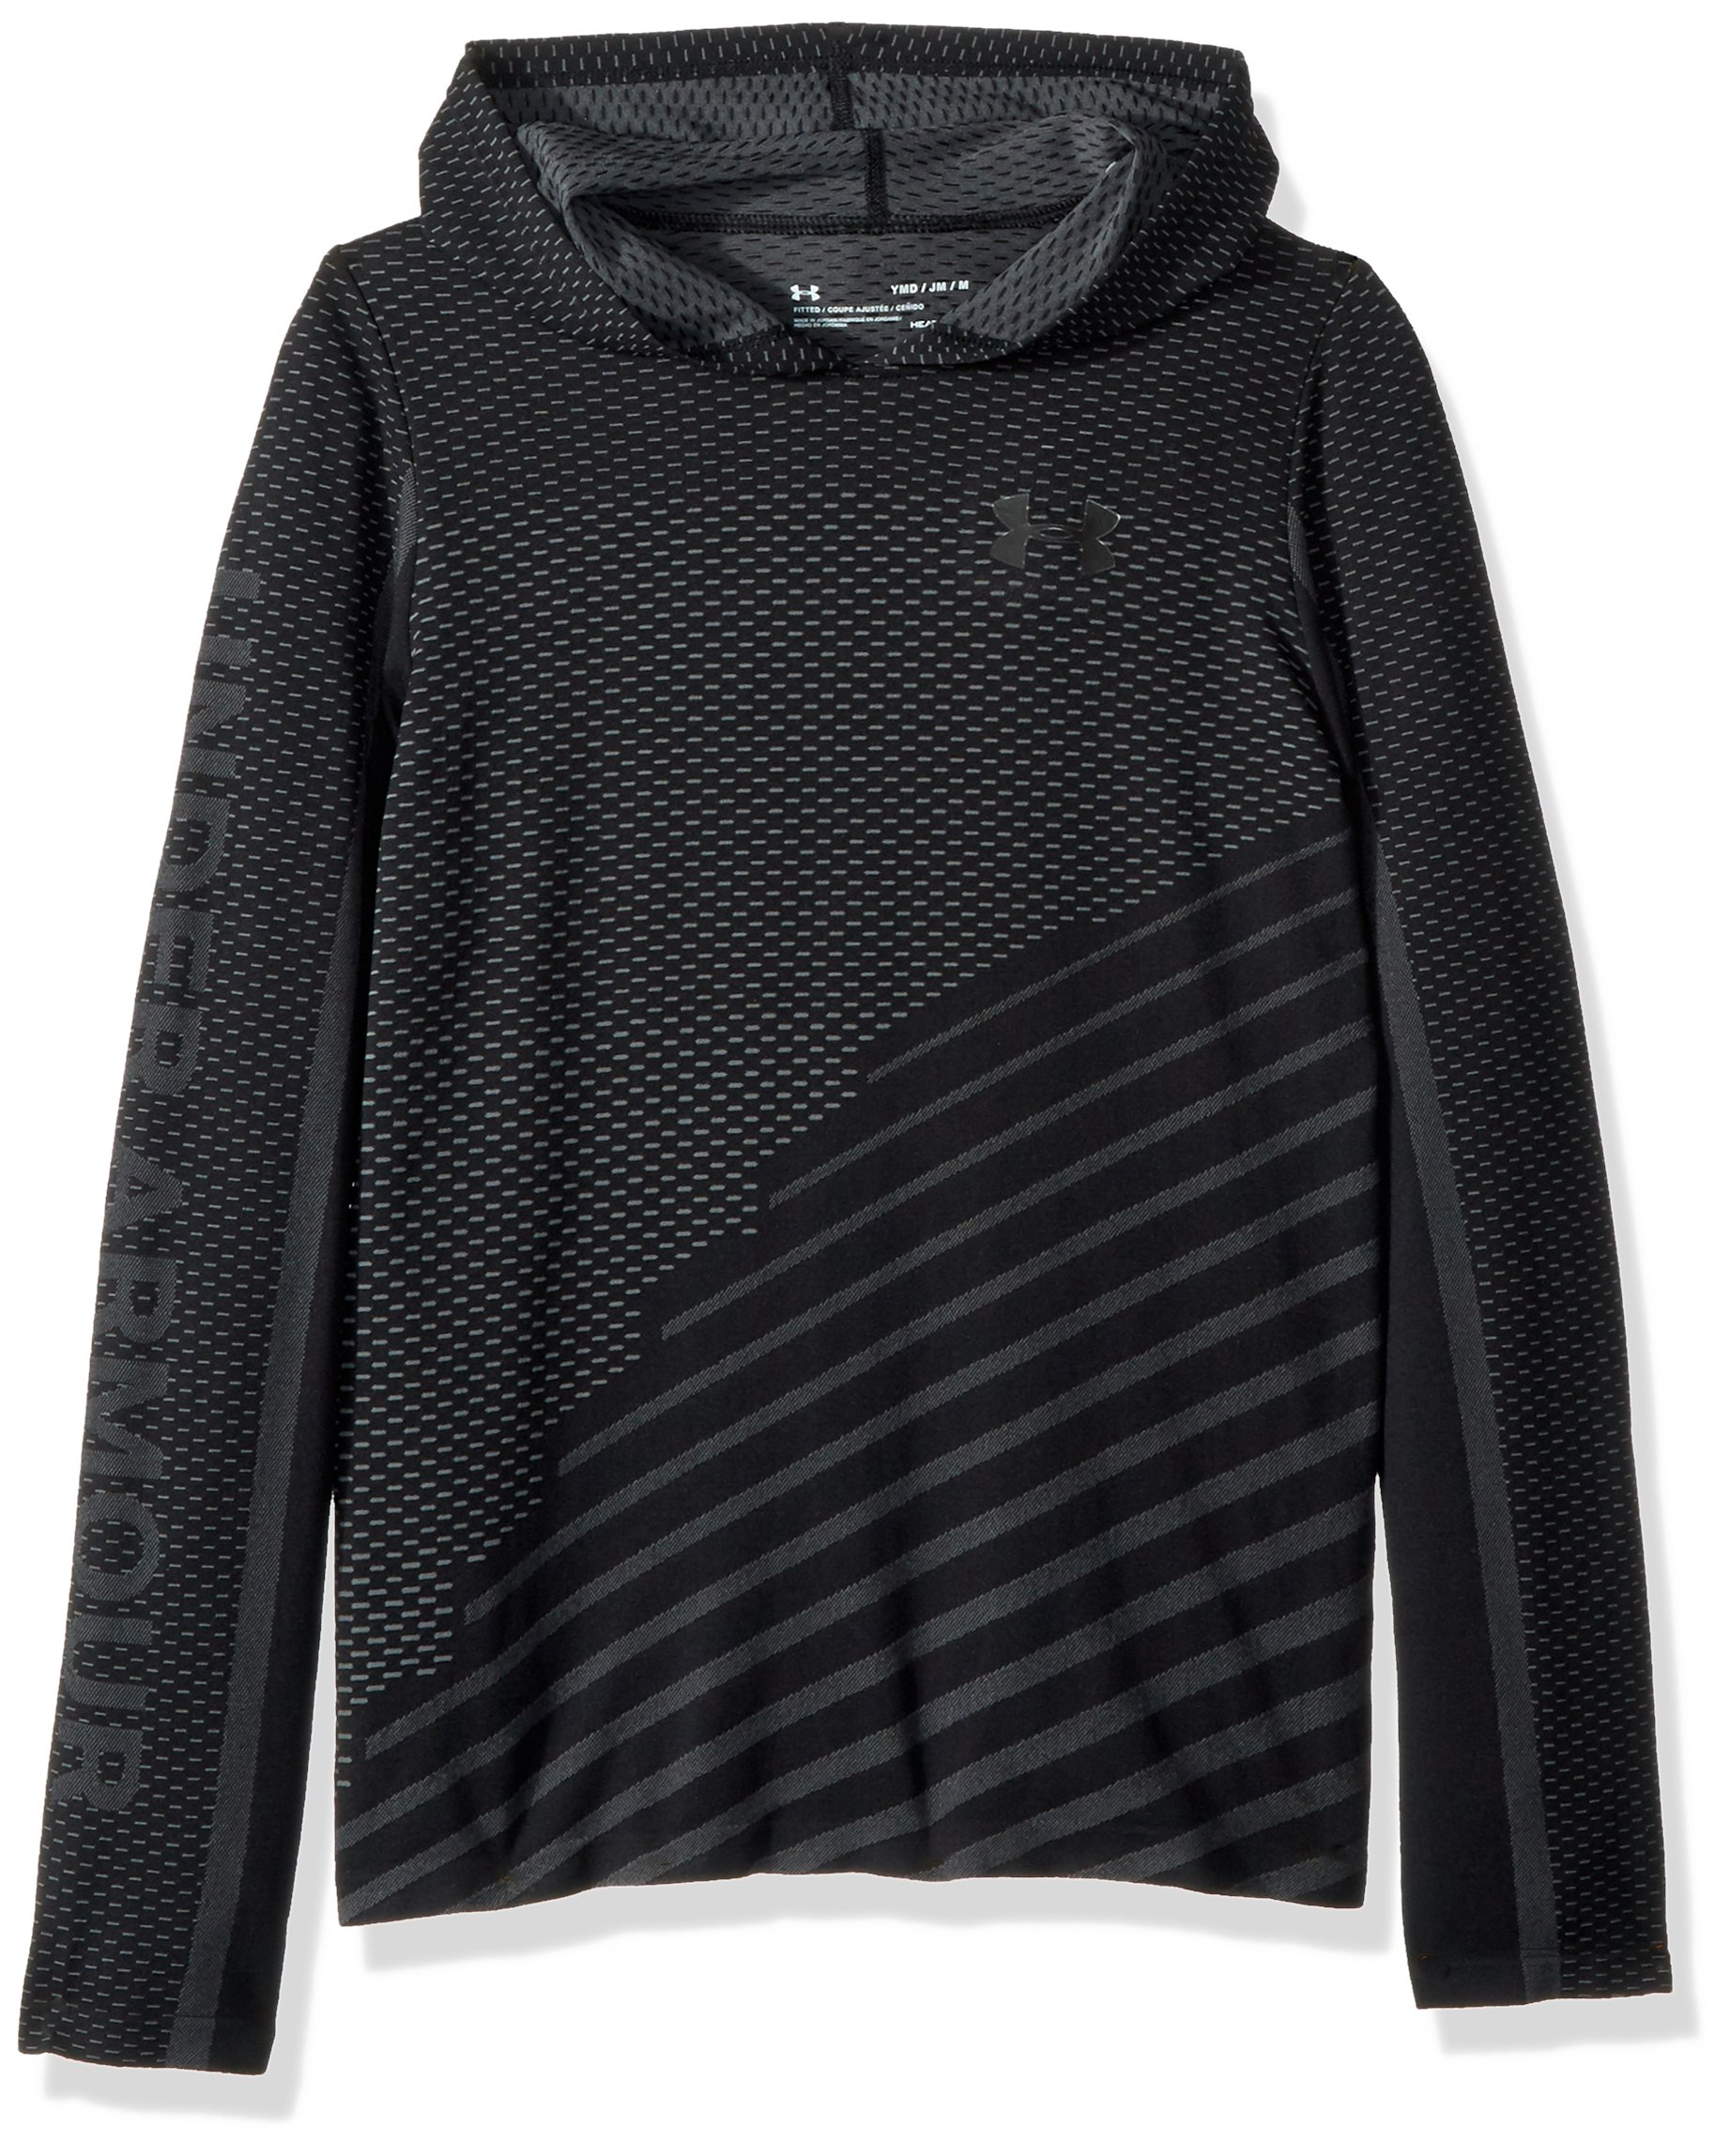 Under Armour Girls Seamless Hoodie, Black (001)/Black, Youth X-Large by Under Armour